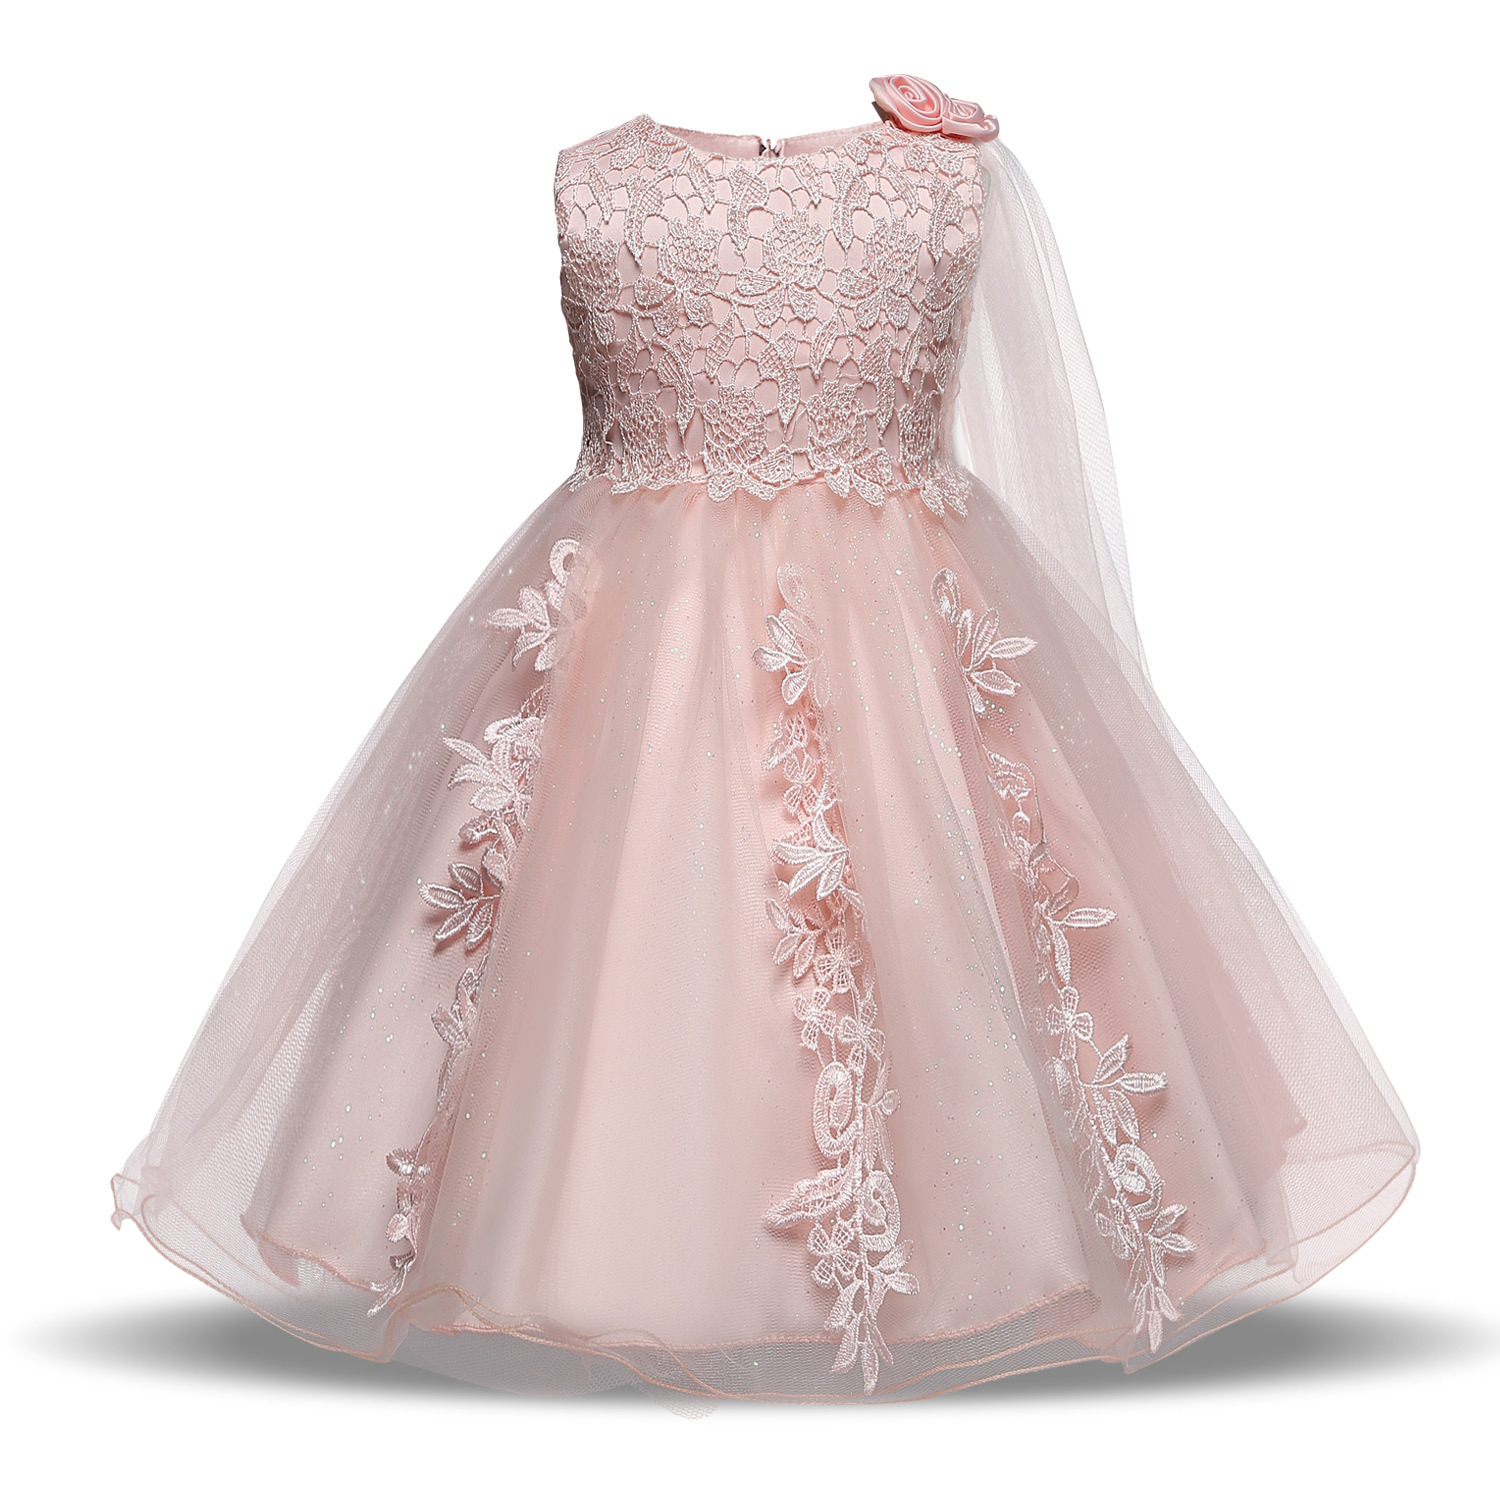 PluckyStar High Quality 2 4Y Kids Dresses For Girls Pink/White Flower Dress For Girl Lace Vestidos Costume Princess Dress D09